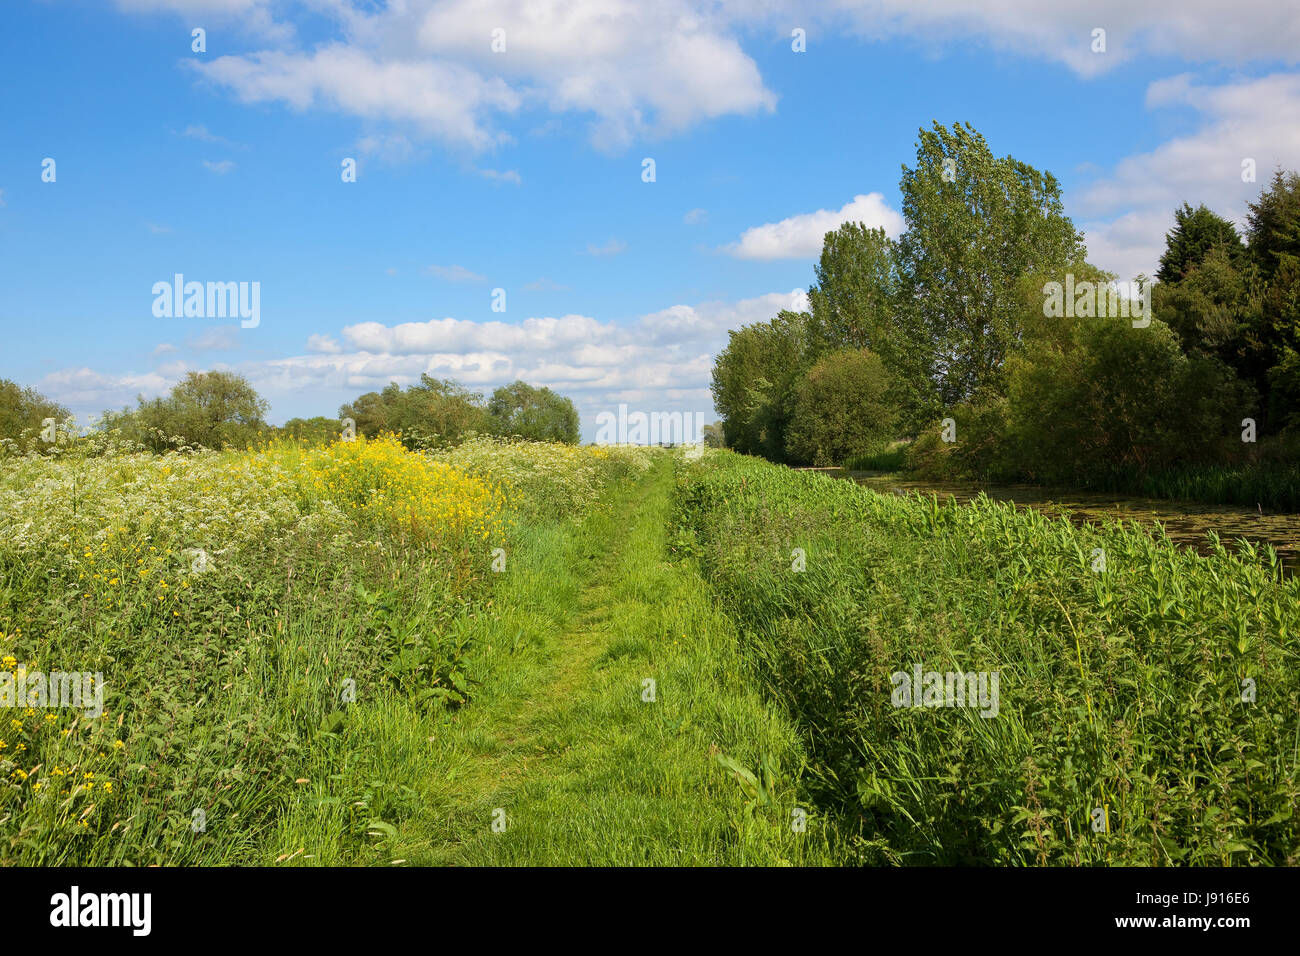 a grassy towpath and canal with woodland and wildflowers in summer under a blue cloudy sky in yorkshire - Stock Image